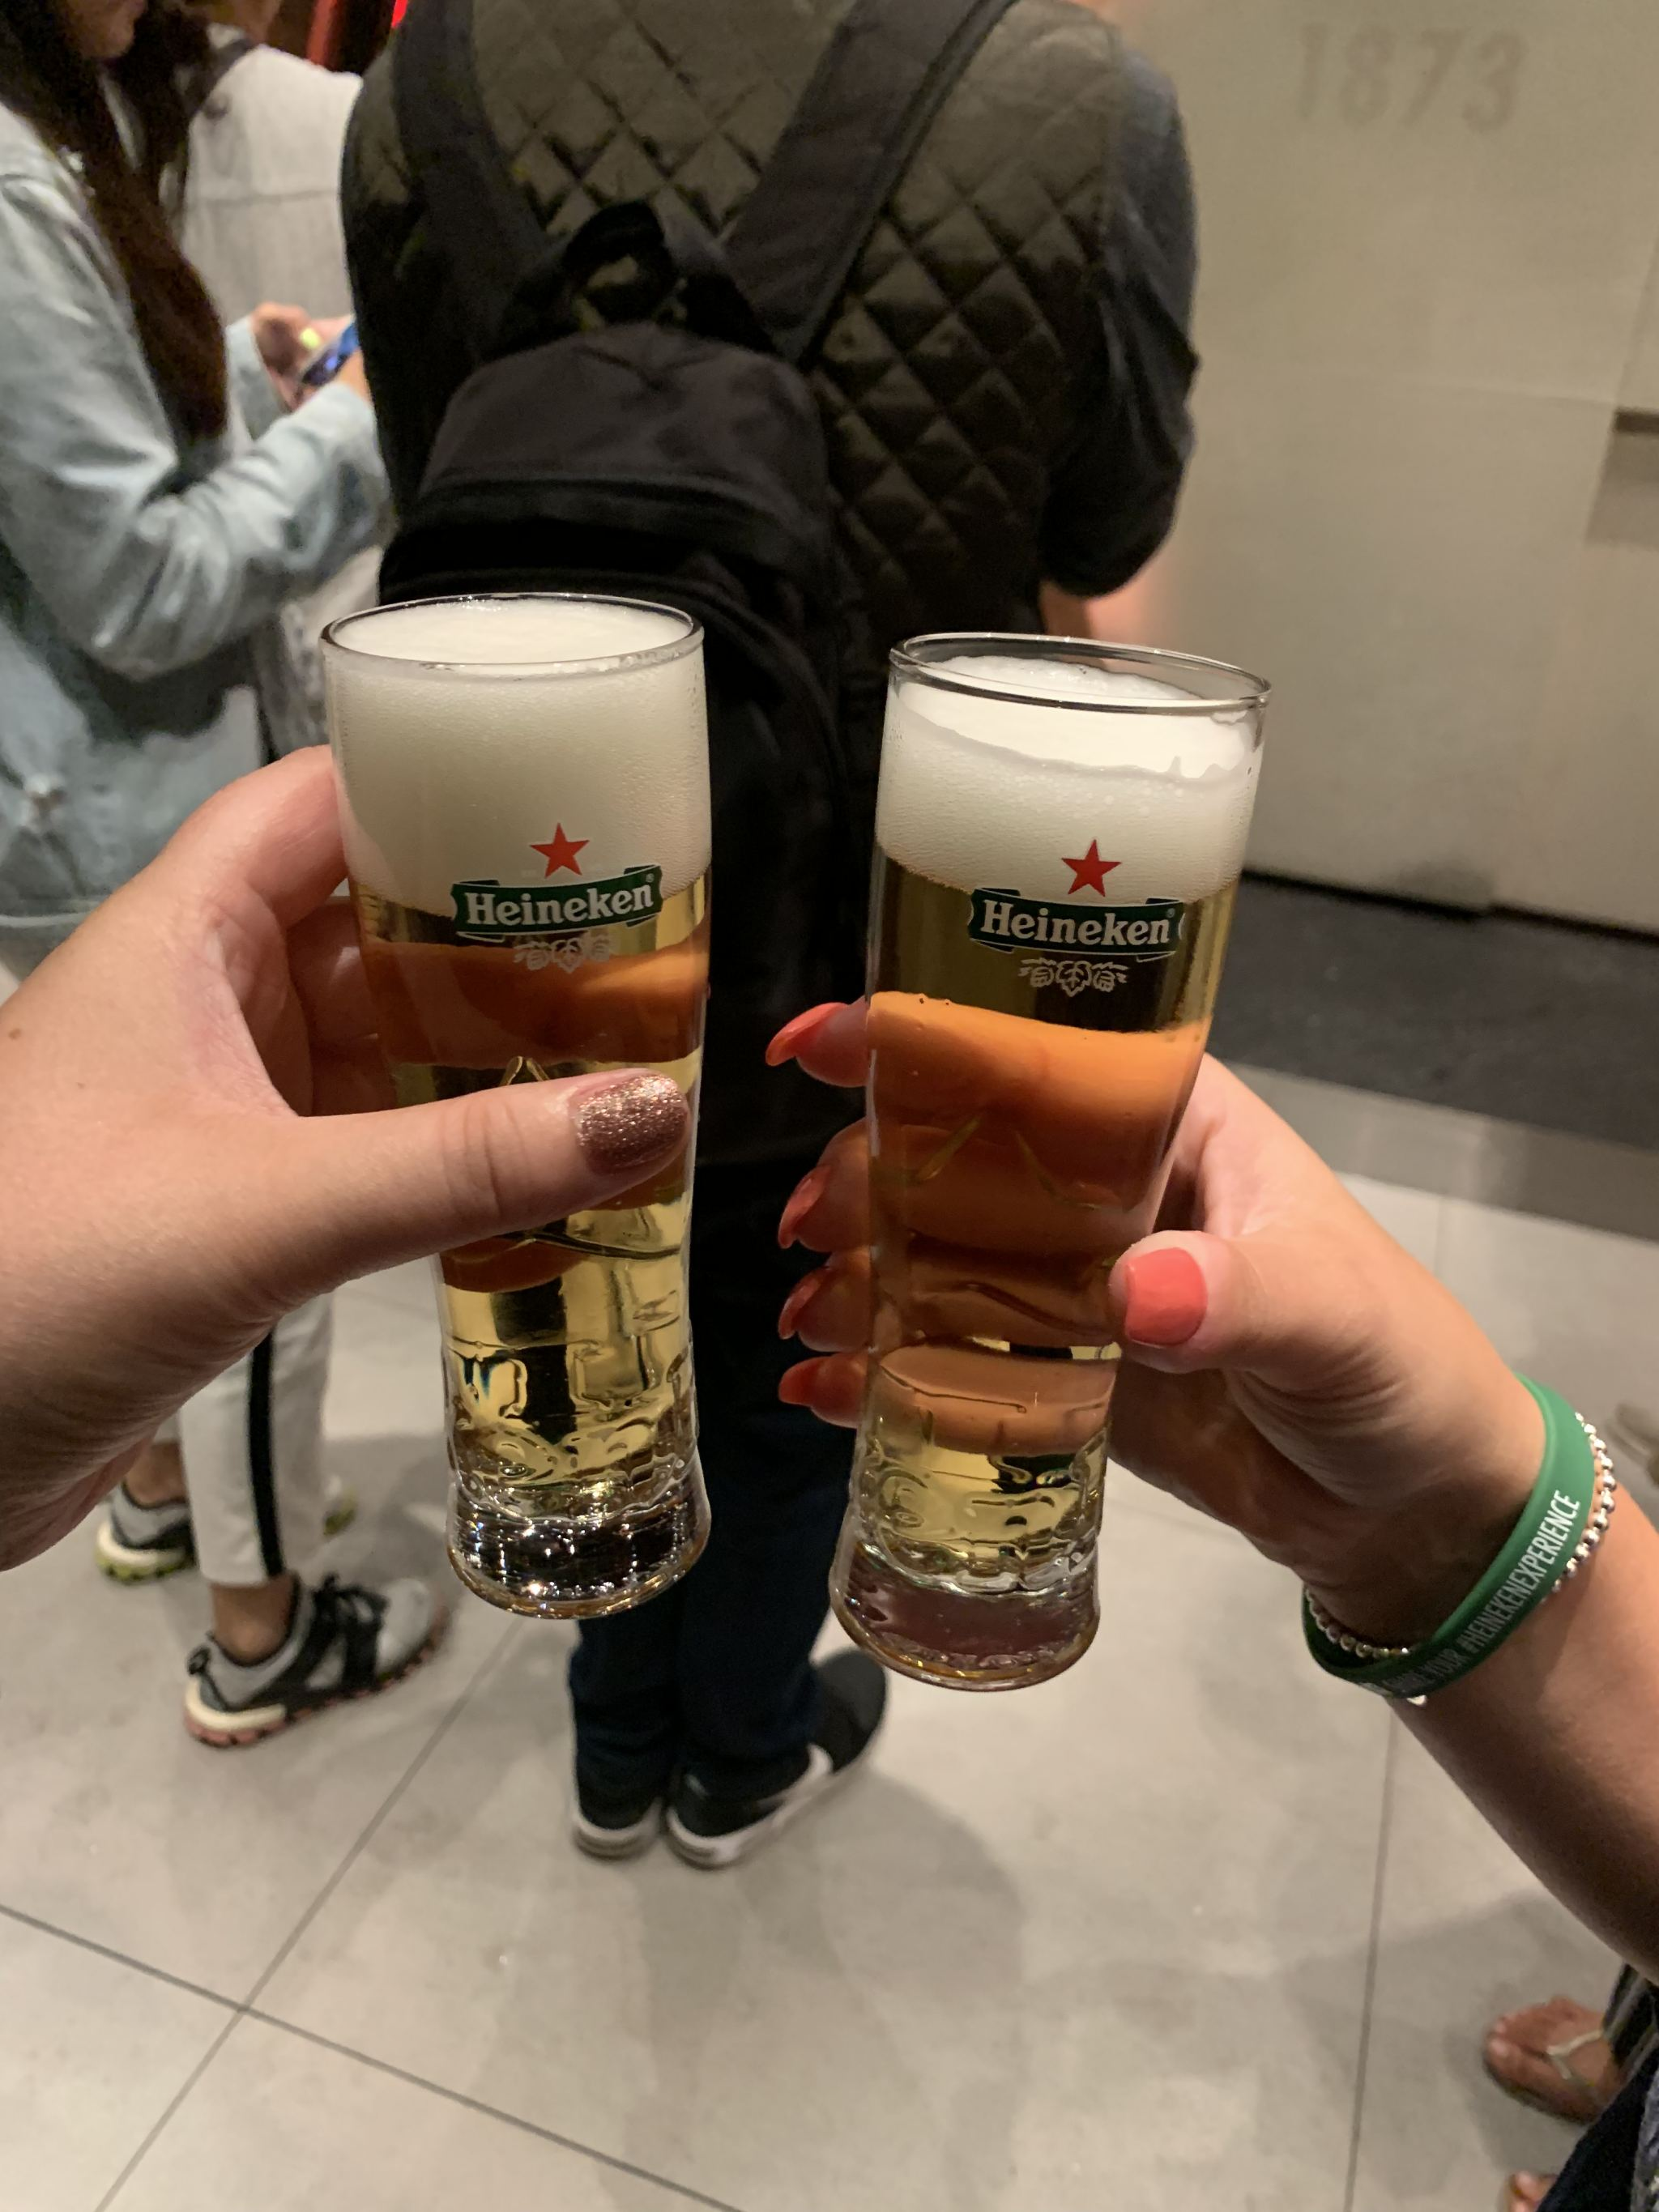 heineken tour in amsterdam